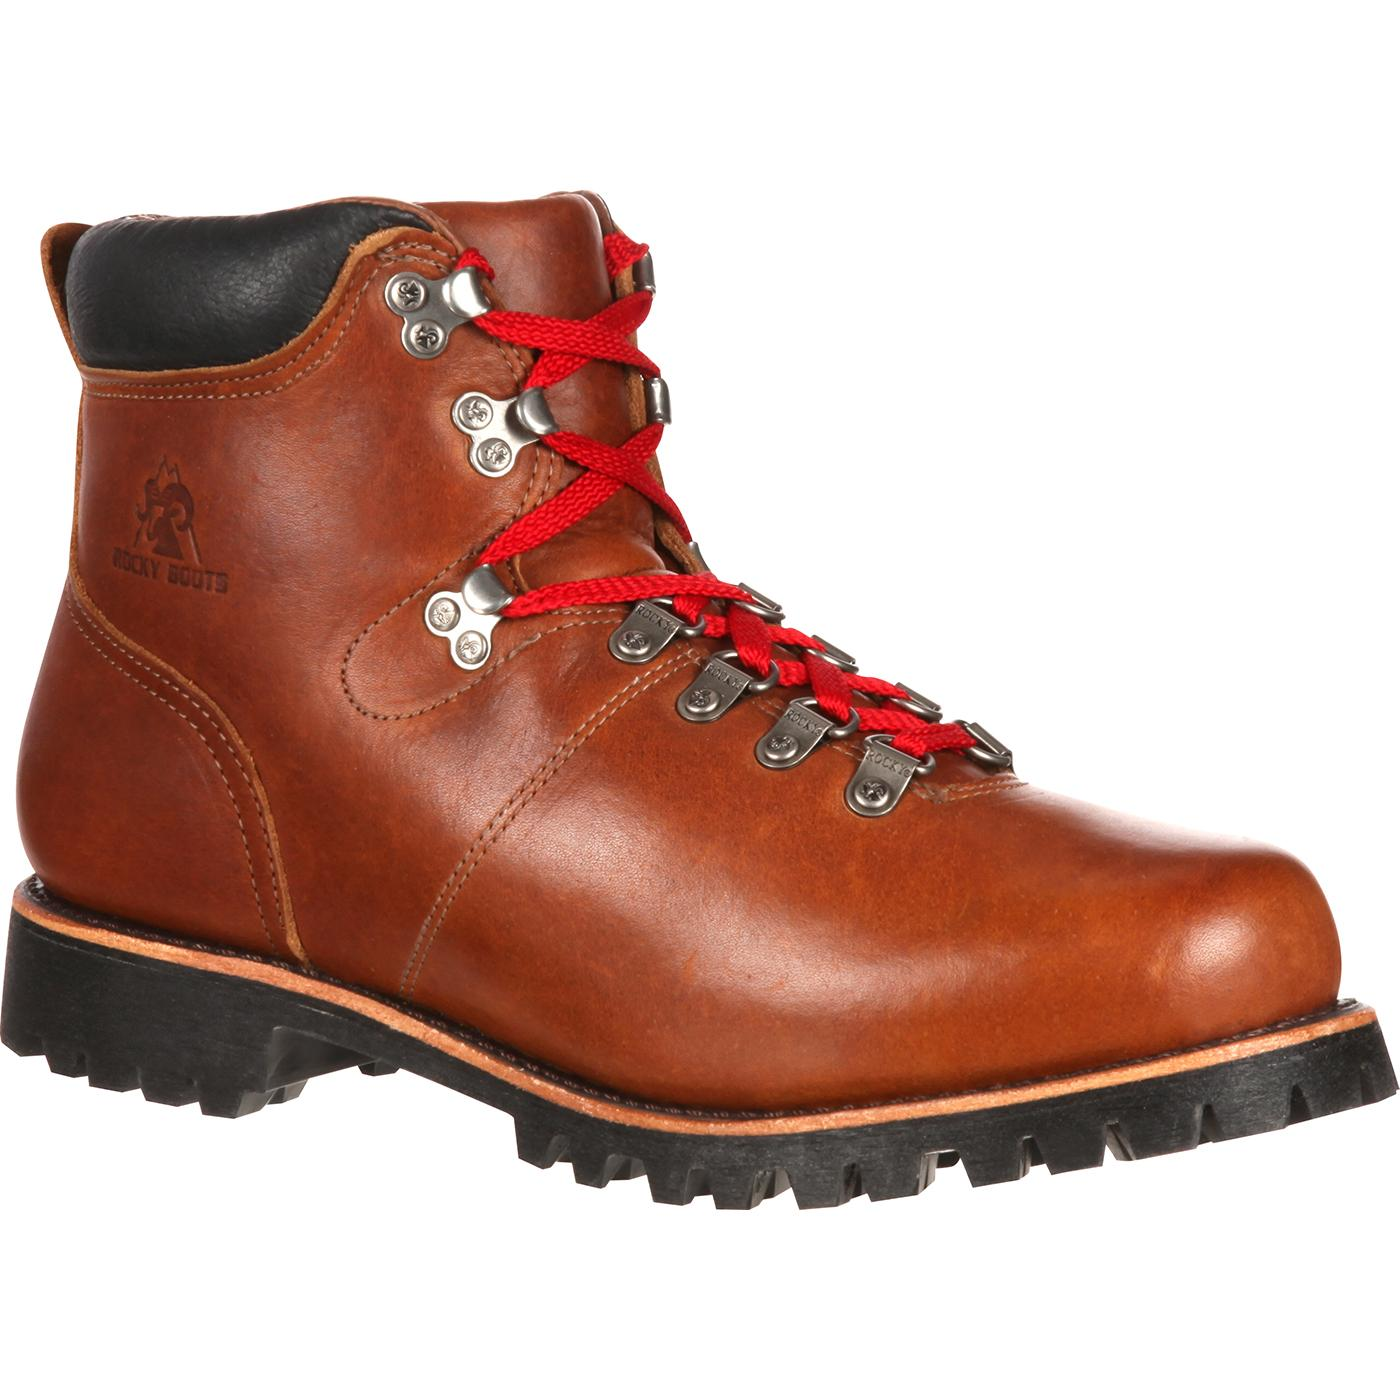 Rocky Original Throwback Hiker Made In The Usa Rks0221